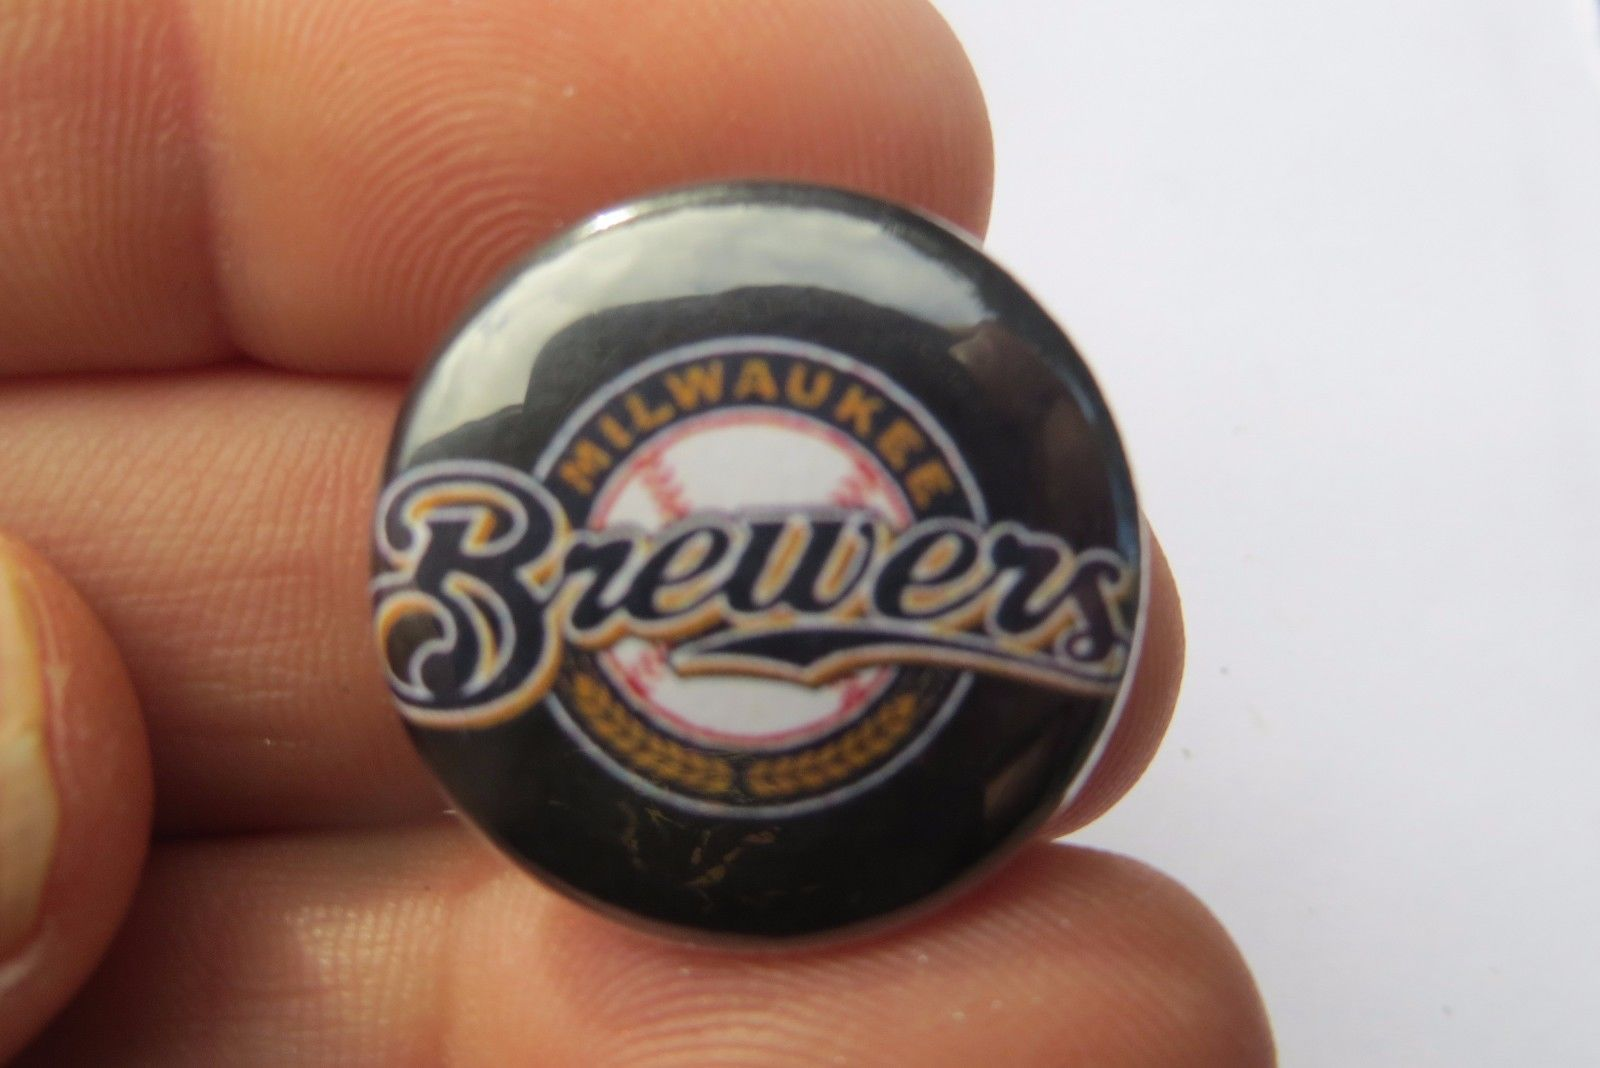 Milwaukee Brewers ,MLB baseball  collectible sports team fan pin button  image 3